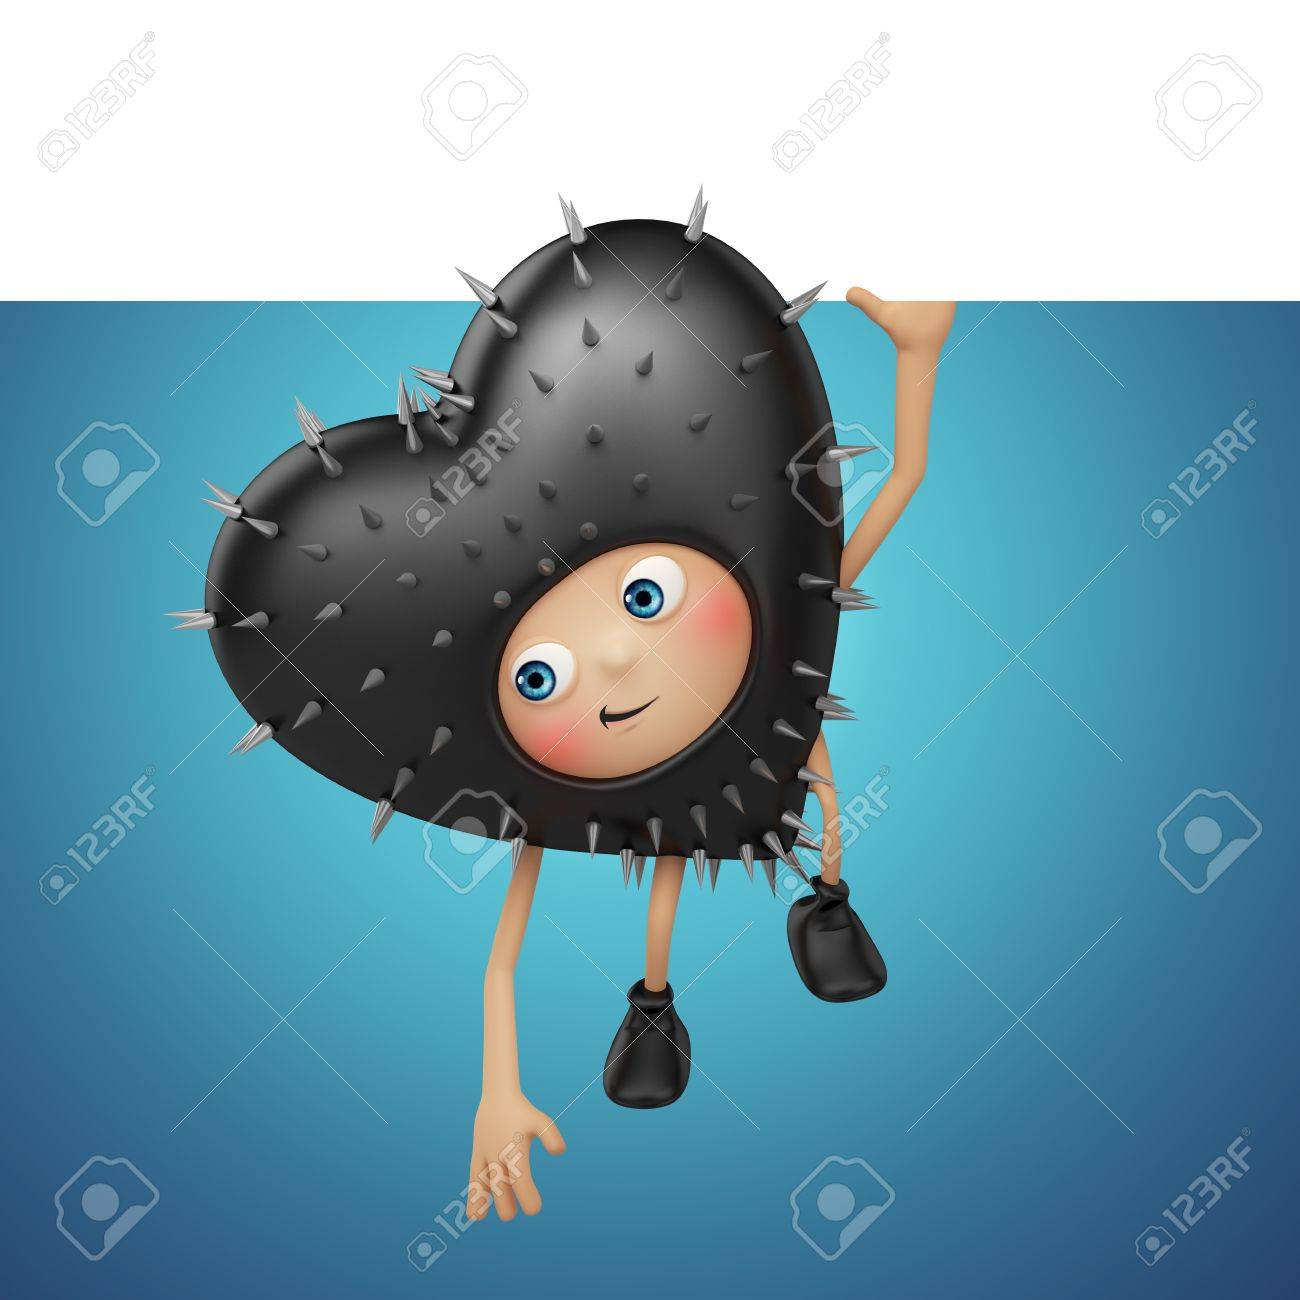 Funny Valentine black heart cartoon holding banner and looking up Stock Photo - 16983872